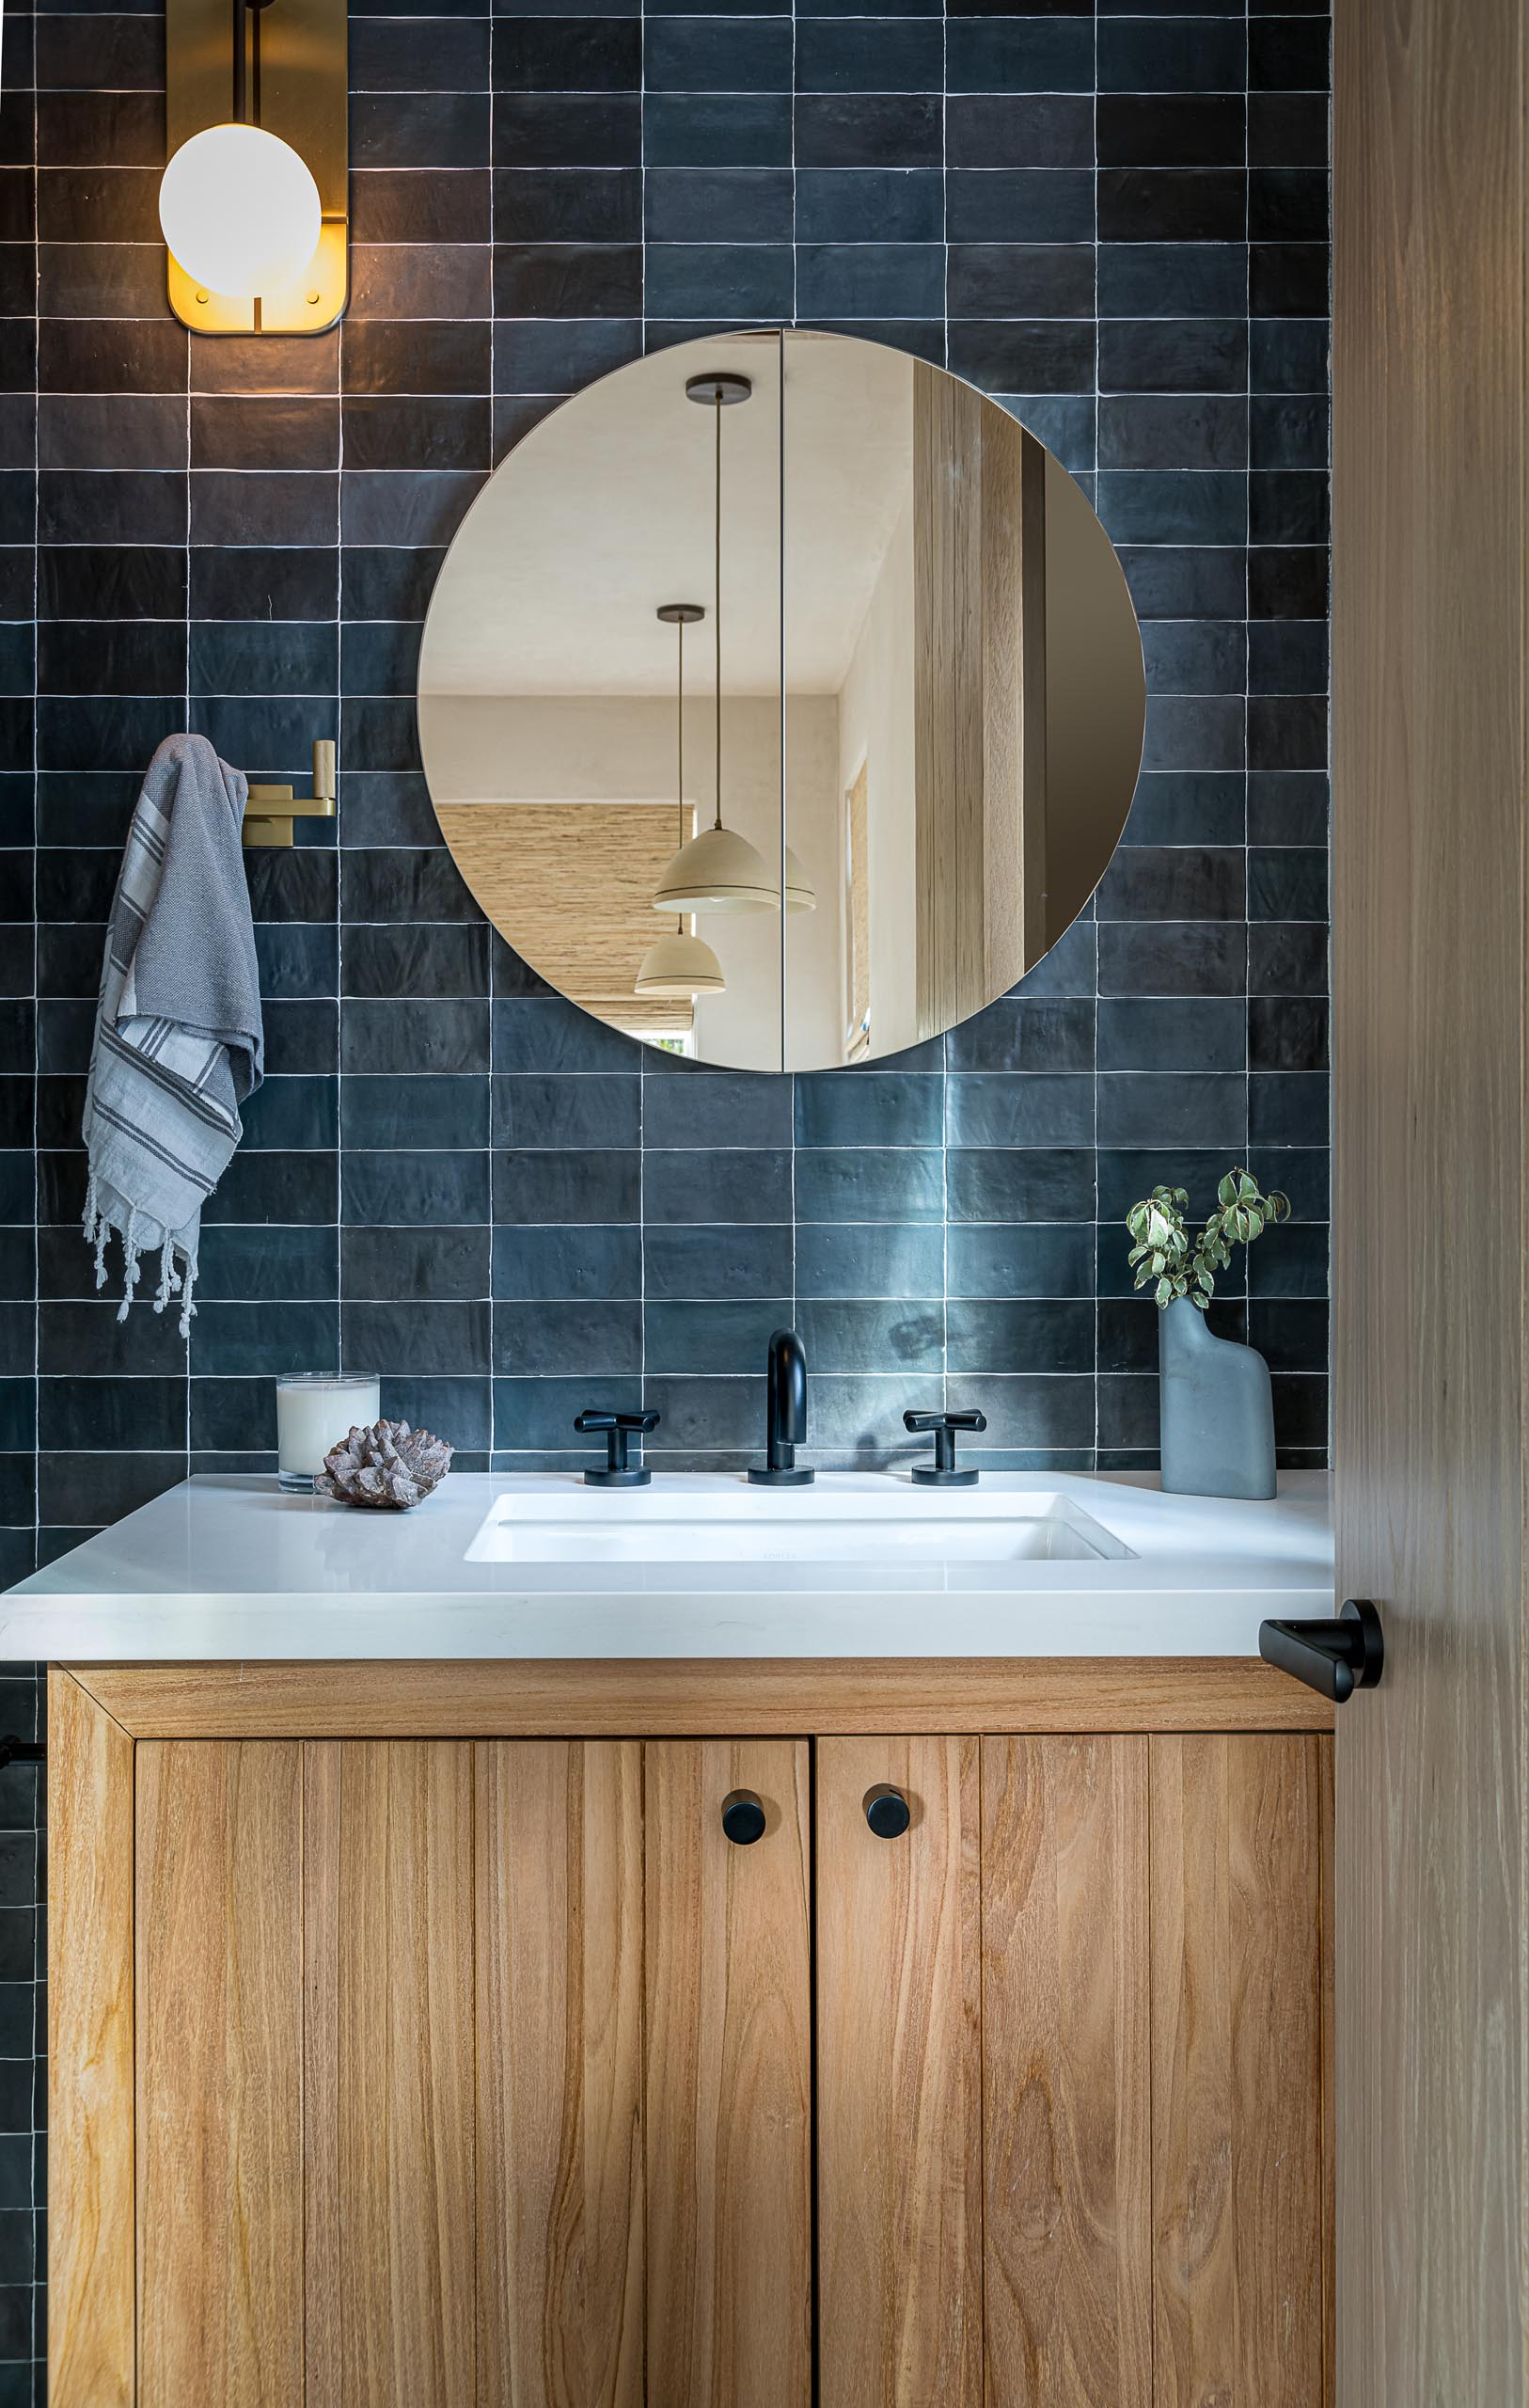 A contemporary bathroom with textured blue tiles, a wood vanity with white sink and countertop, and a round mirror.